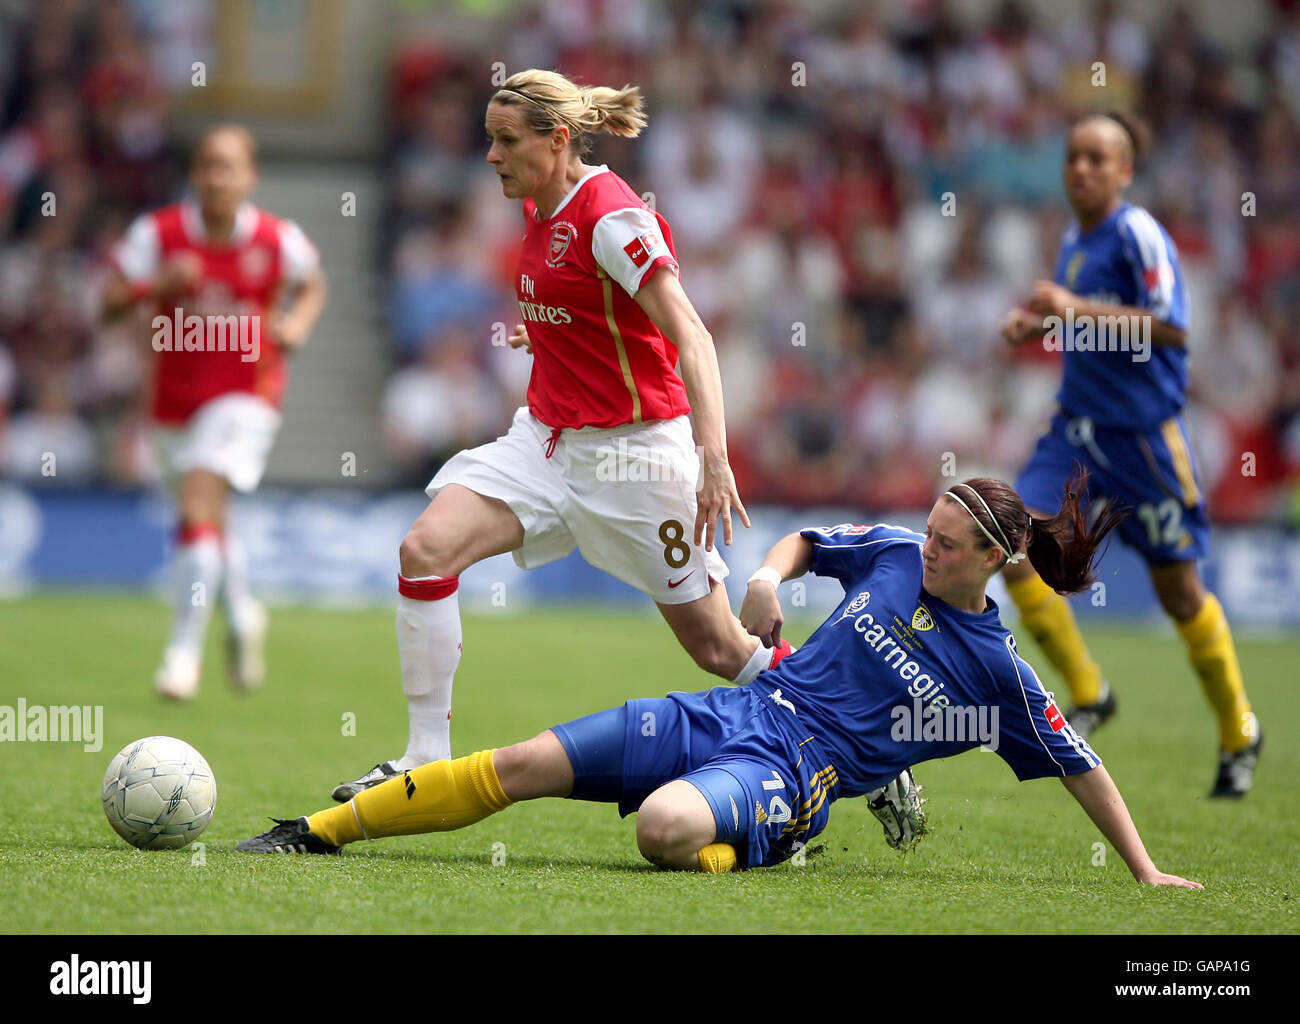 Soccer - FA Women's Cup - Final - Arsenal v Leeds United - City Ground - 2008 Stock Photo